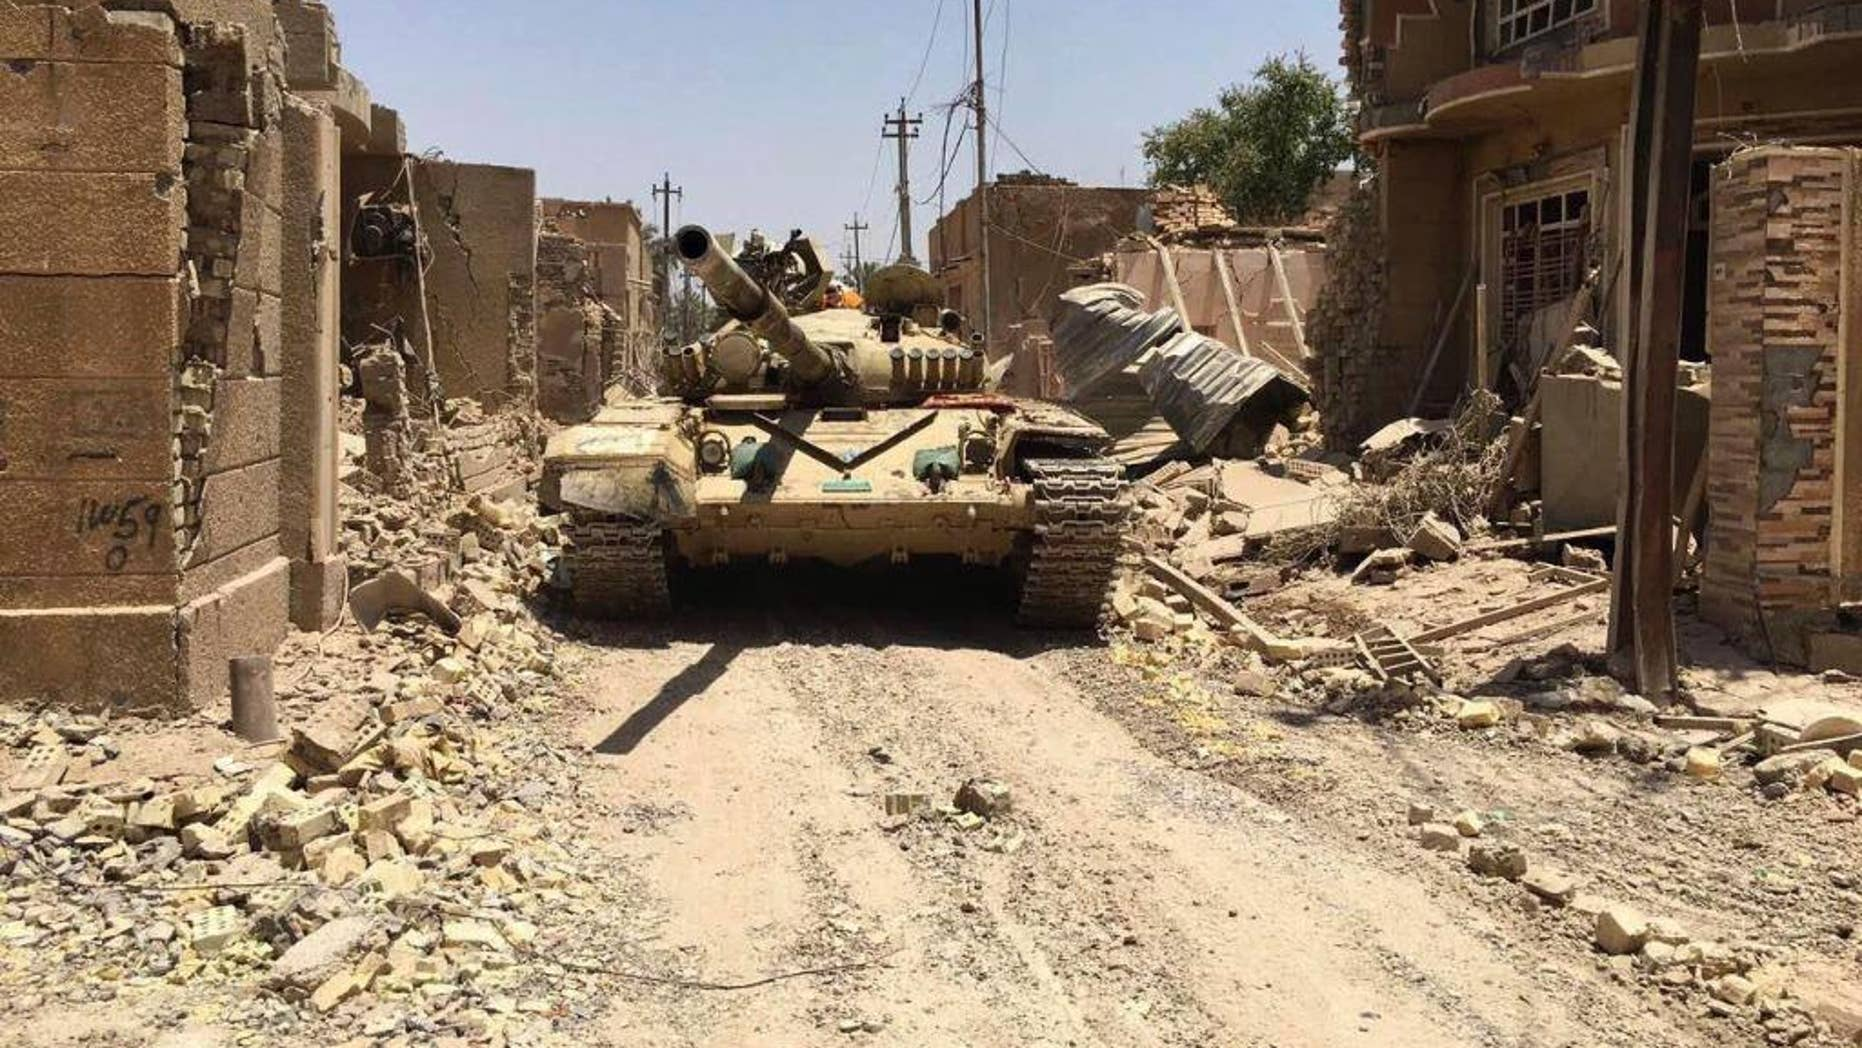 """Iraqi security forces in al-Julan neighborhood after defeating Islamic State militants in Fallujah, Iraq, Sunday, June 26, 2016. A senior Iraqi commander said the city of Fallujah was """"fully liberated"""" from Islamic State militants on Sunday, after a more than monthlong military operation. (AP Photo)"""